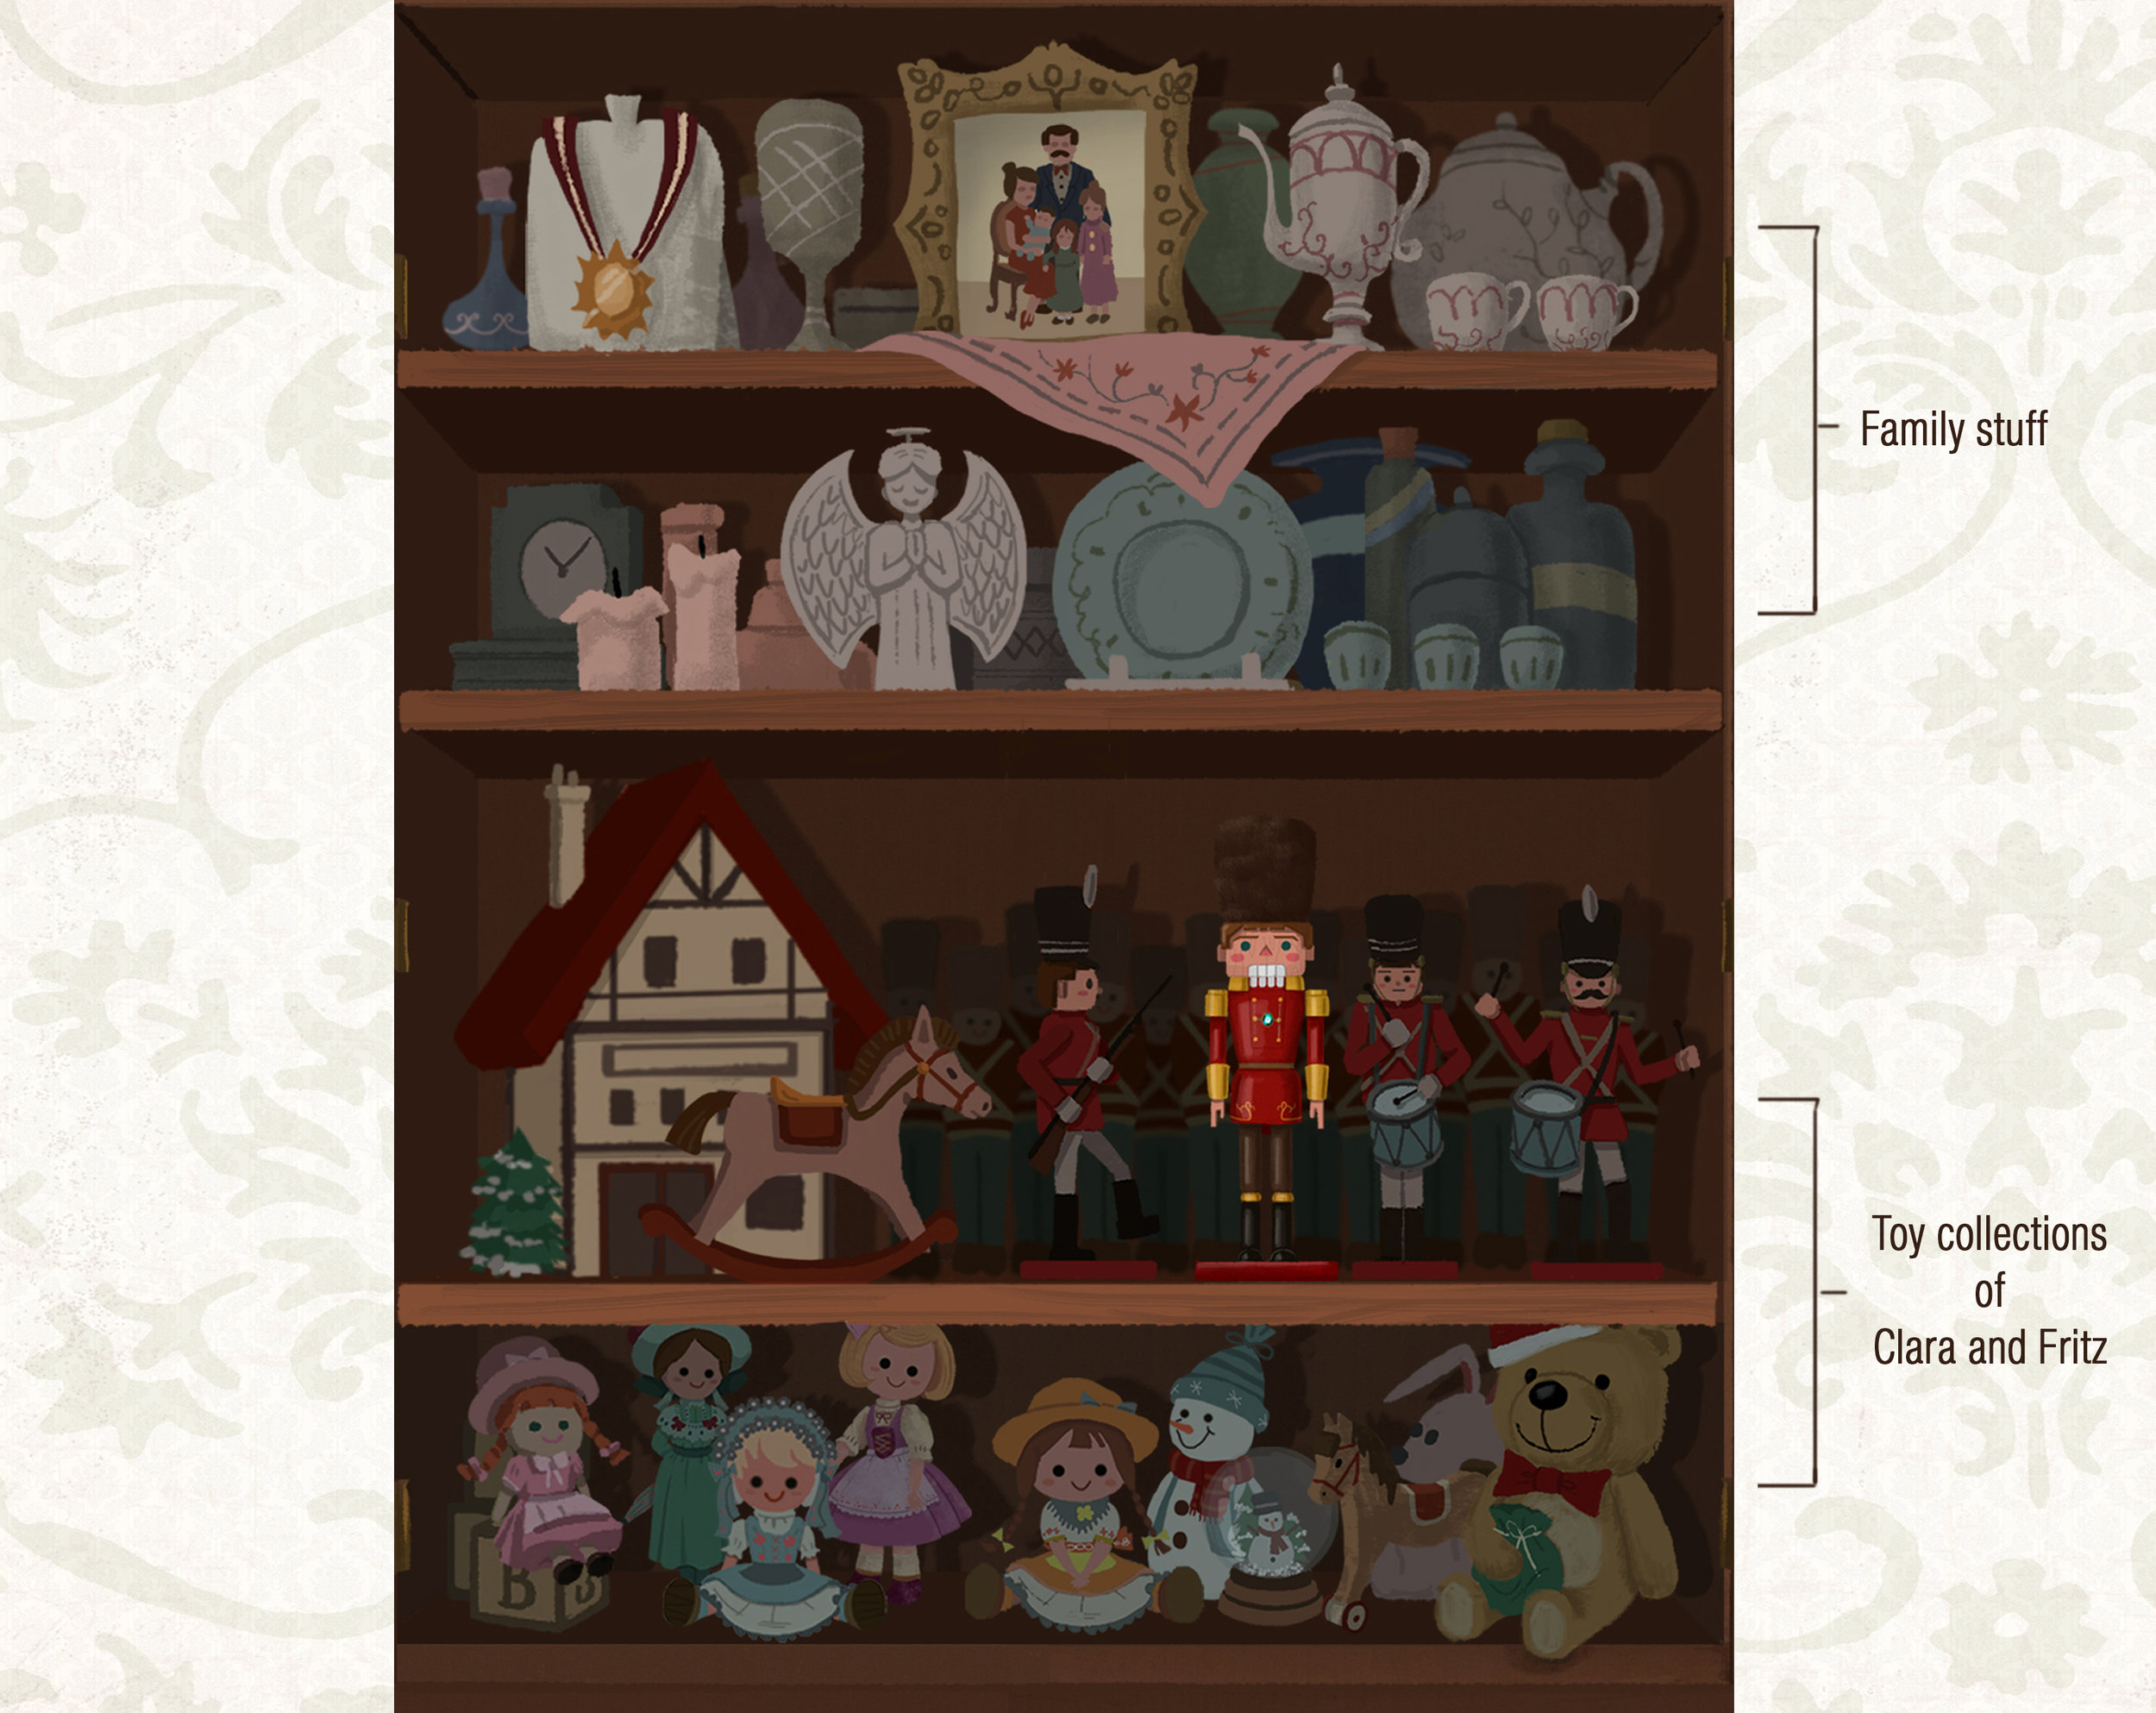 Prop_toy collection_enlarge_Soyun Park.jpg